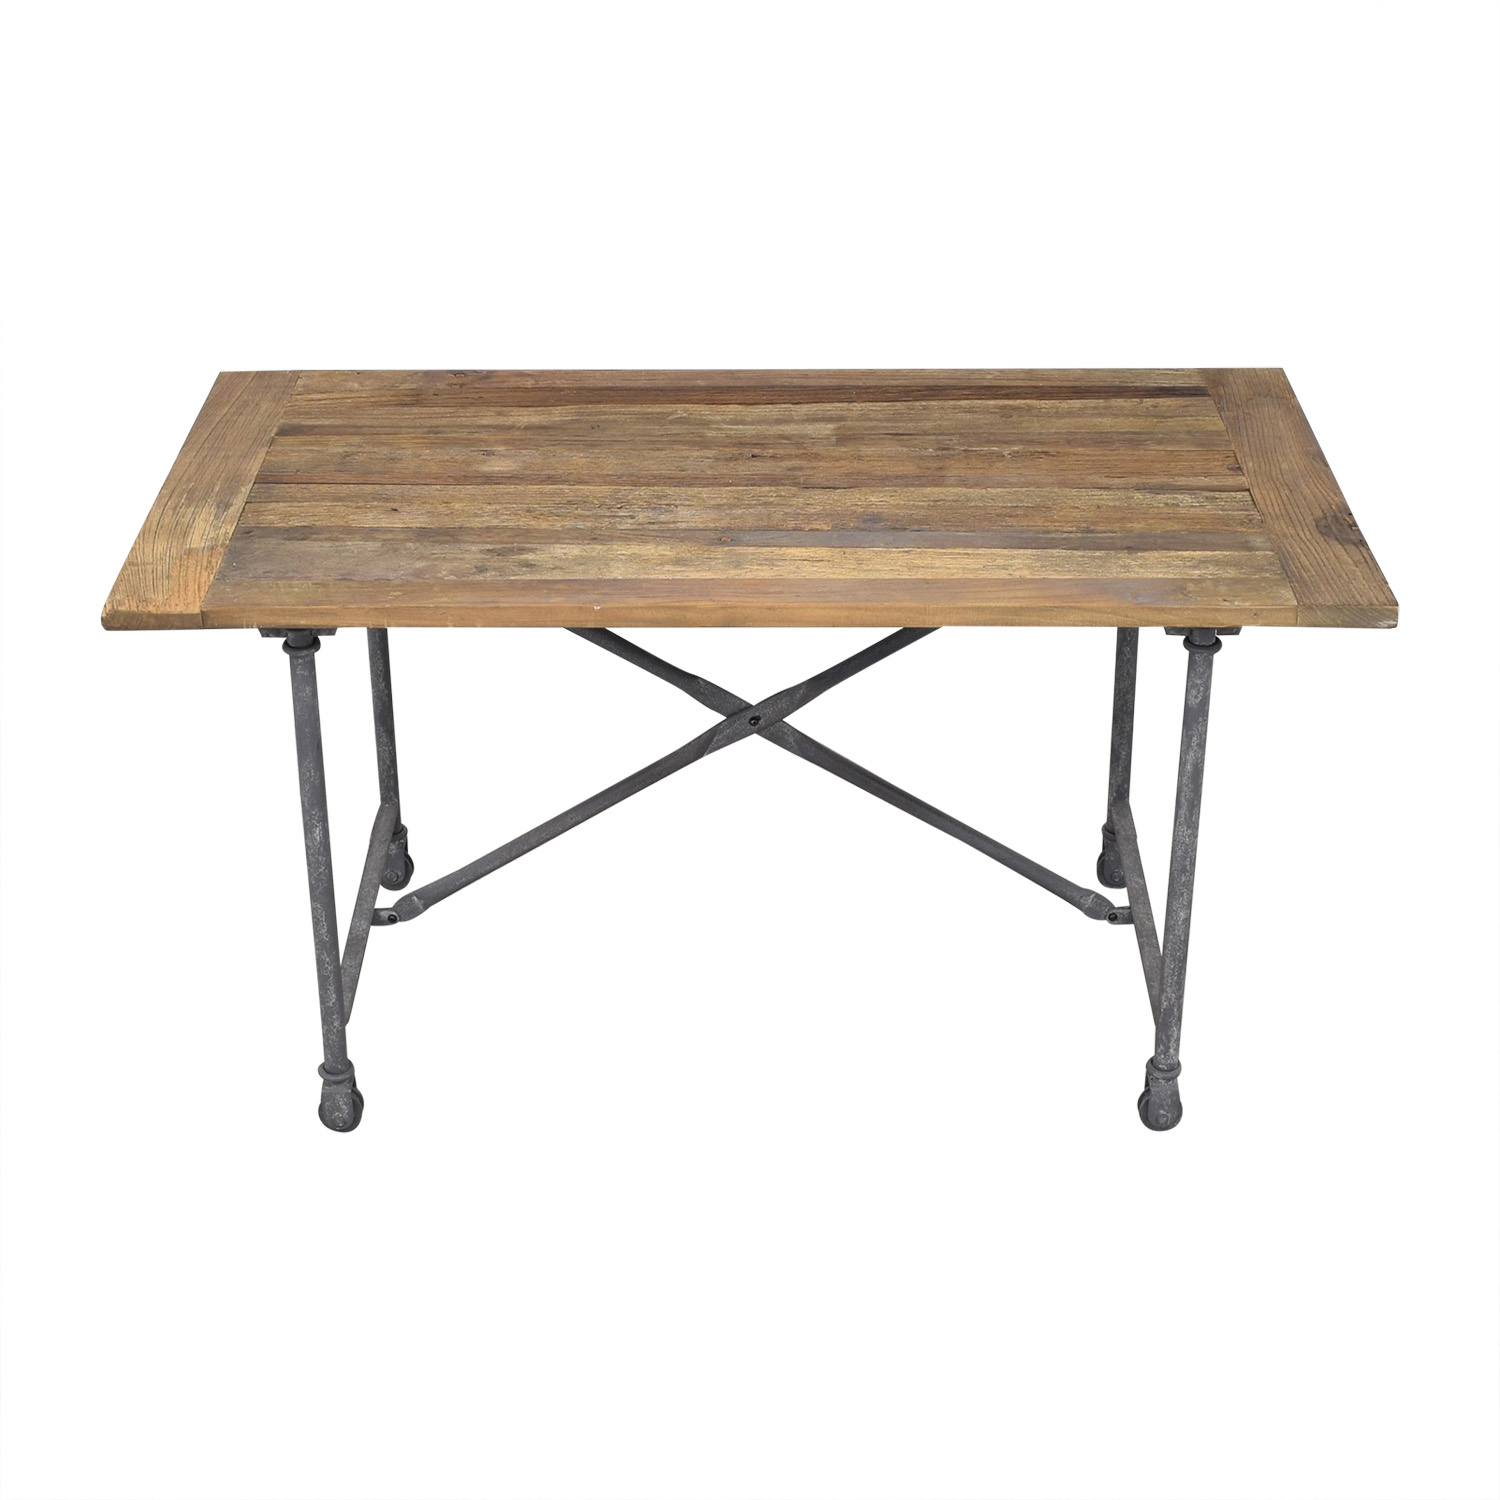 Restoration Hardware Restoration Hardware Flatiron Rectangular Dining Table second hand